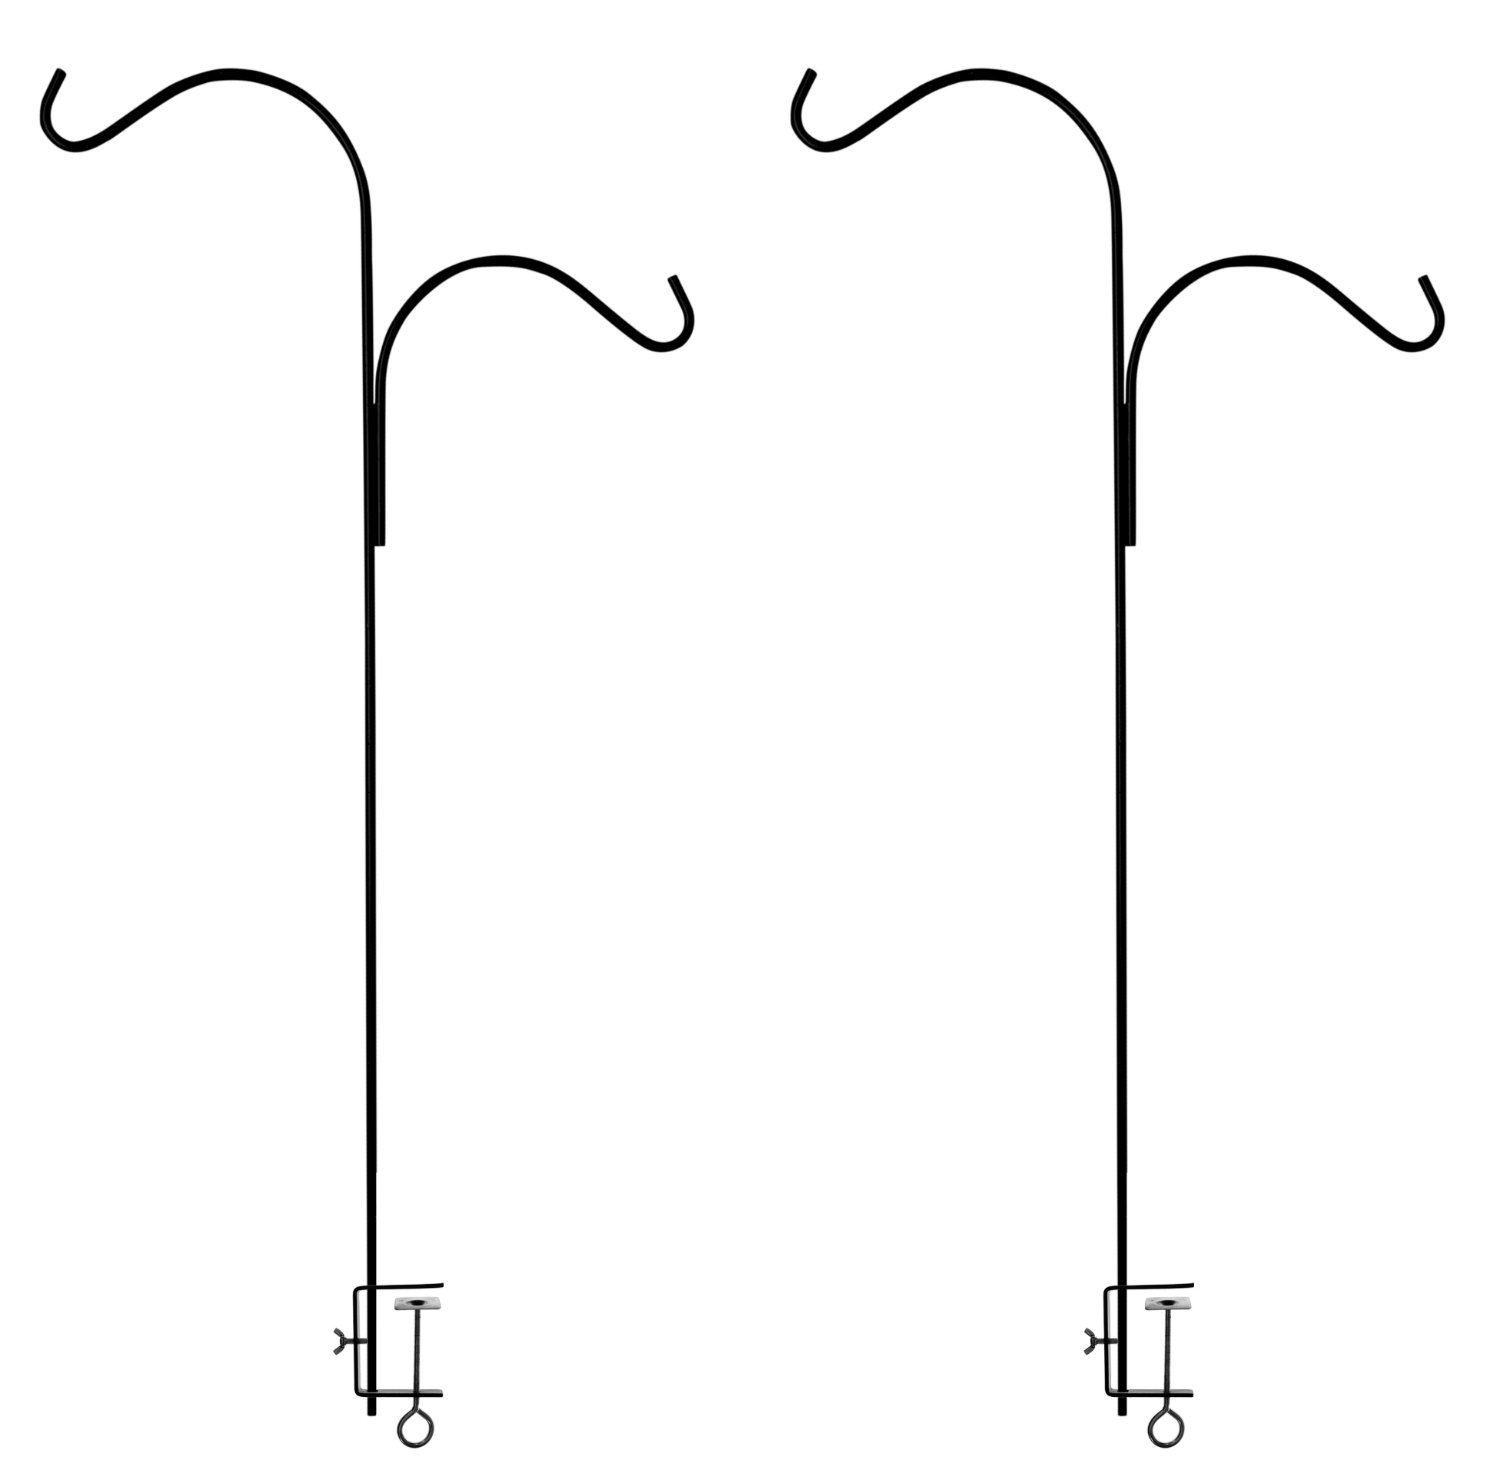 Ashman Double Span Black Deck Hook (2 Pack), 46-Inch Length, Super Strong and Ideal for Bird Feeders, Plant Hangers, Coconut Shell, Hanging Baskets, Lanterns, Wind Chimes and More!